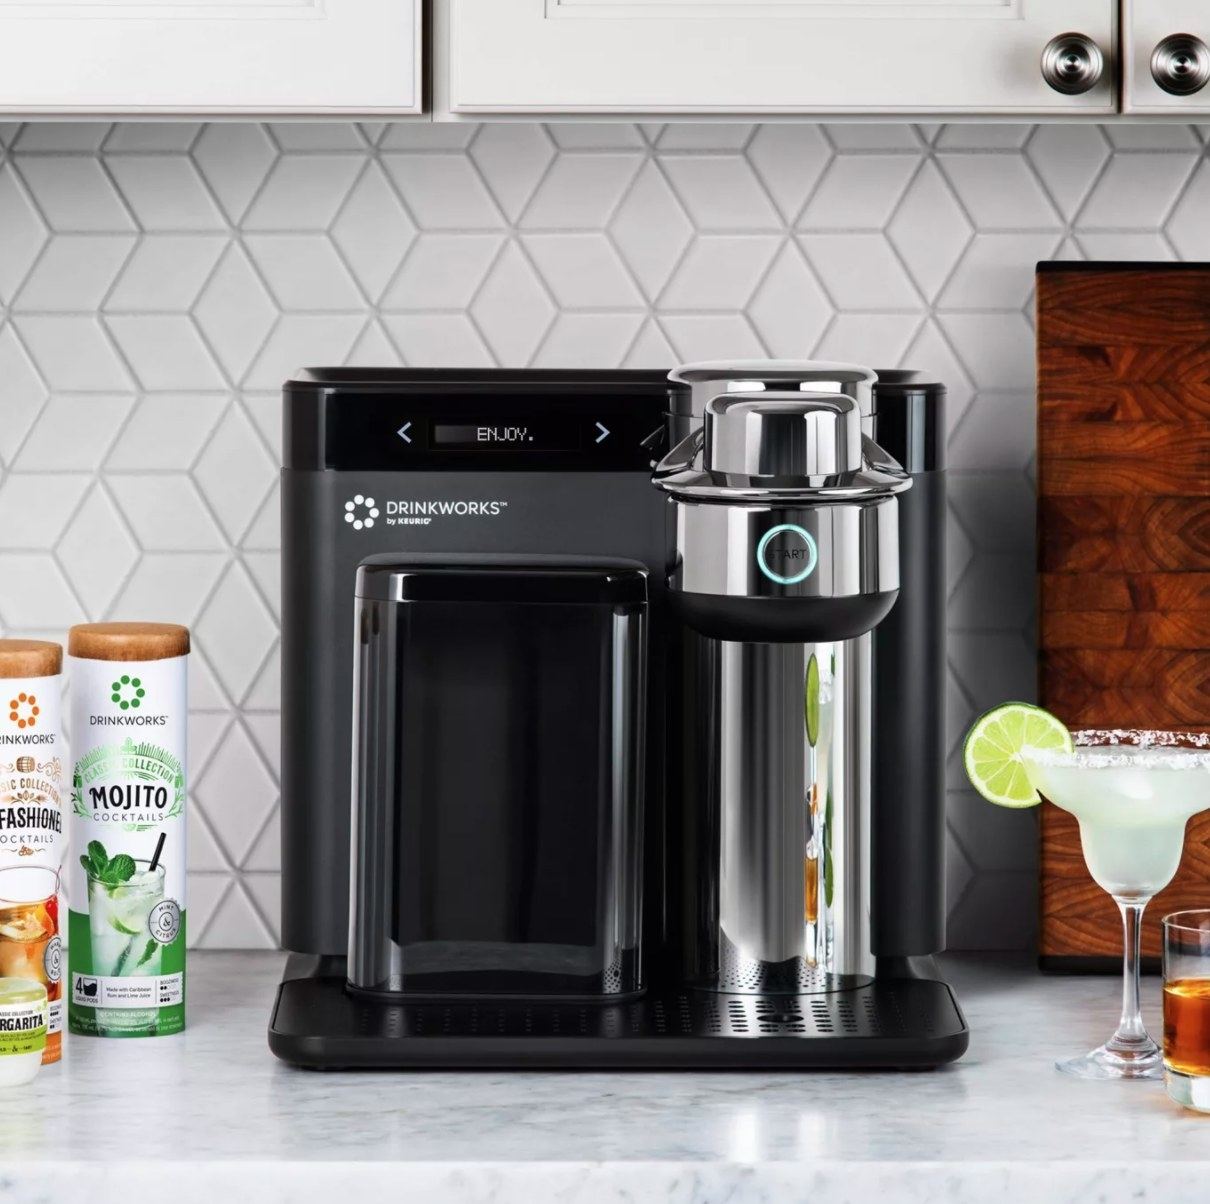 The Keurig Drinkworks Machine